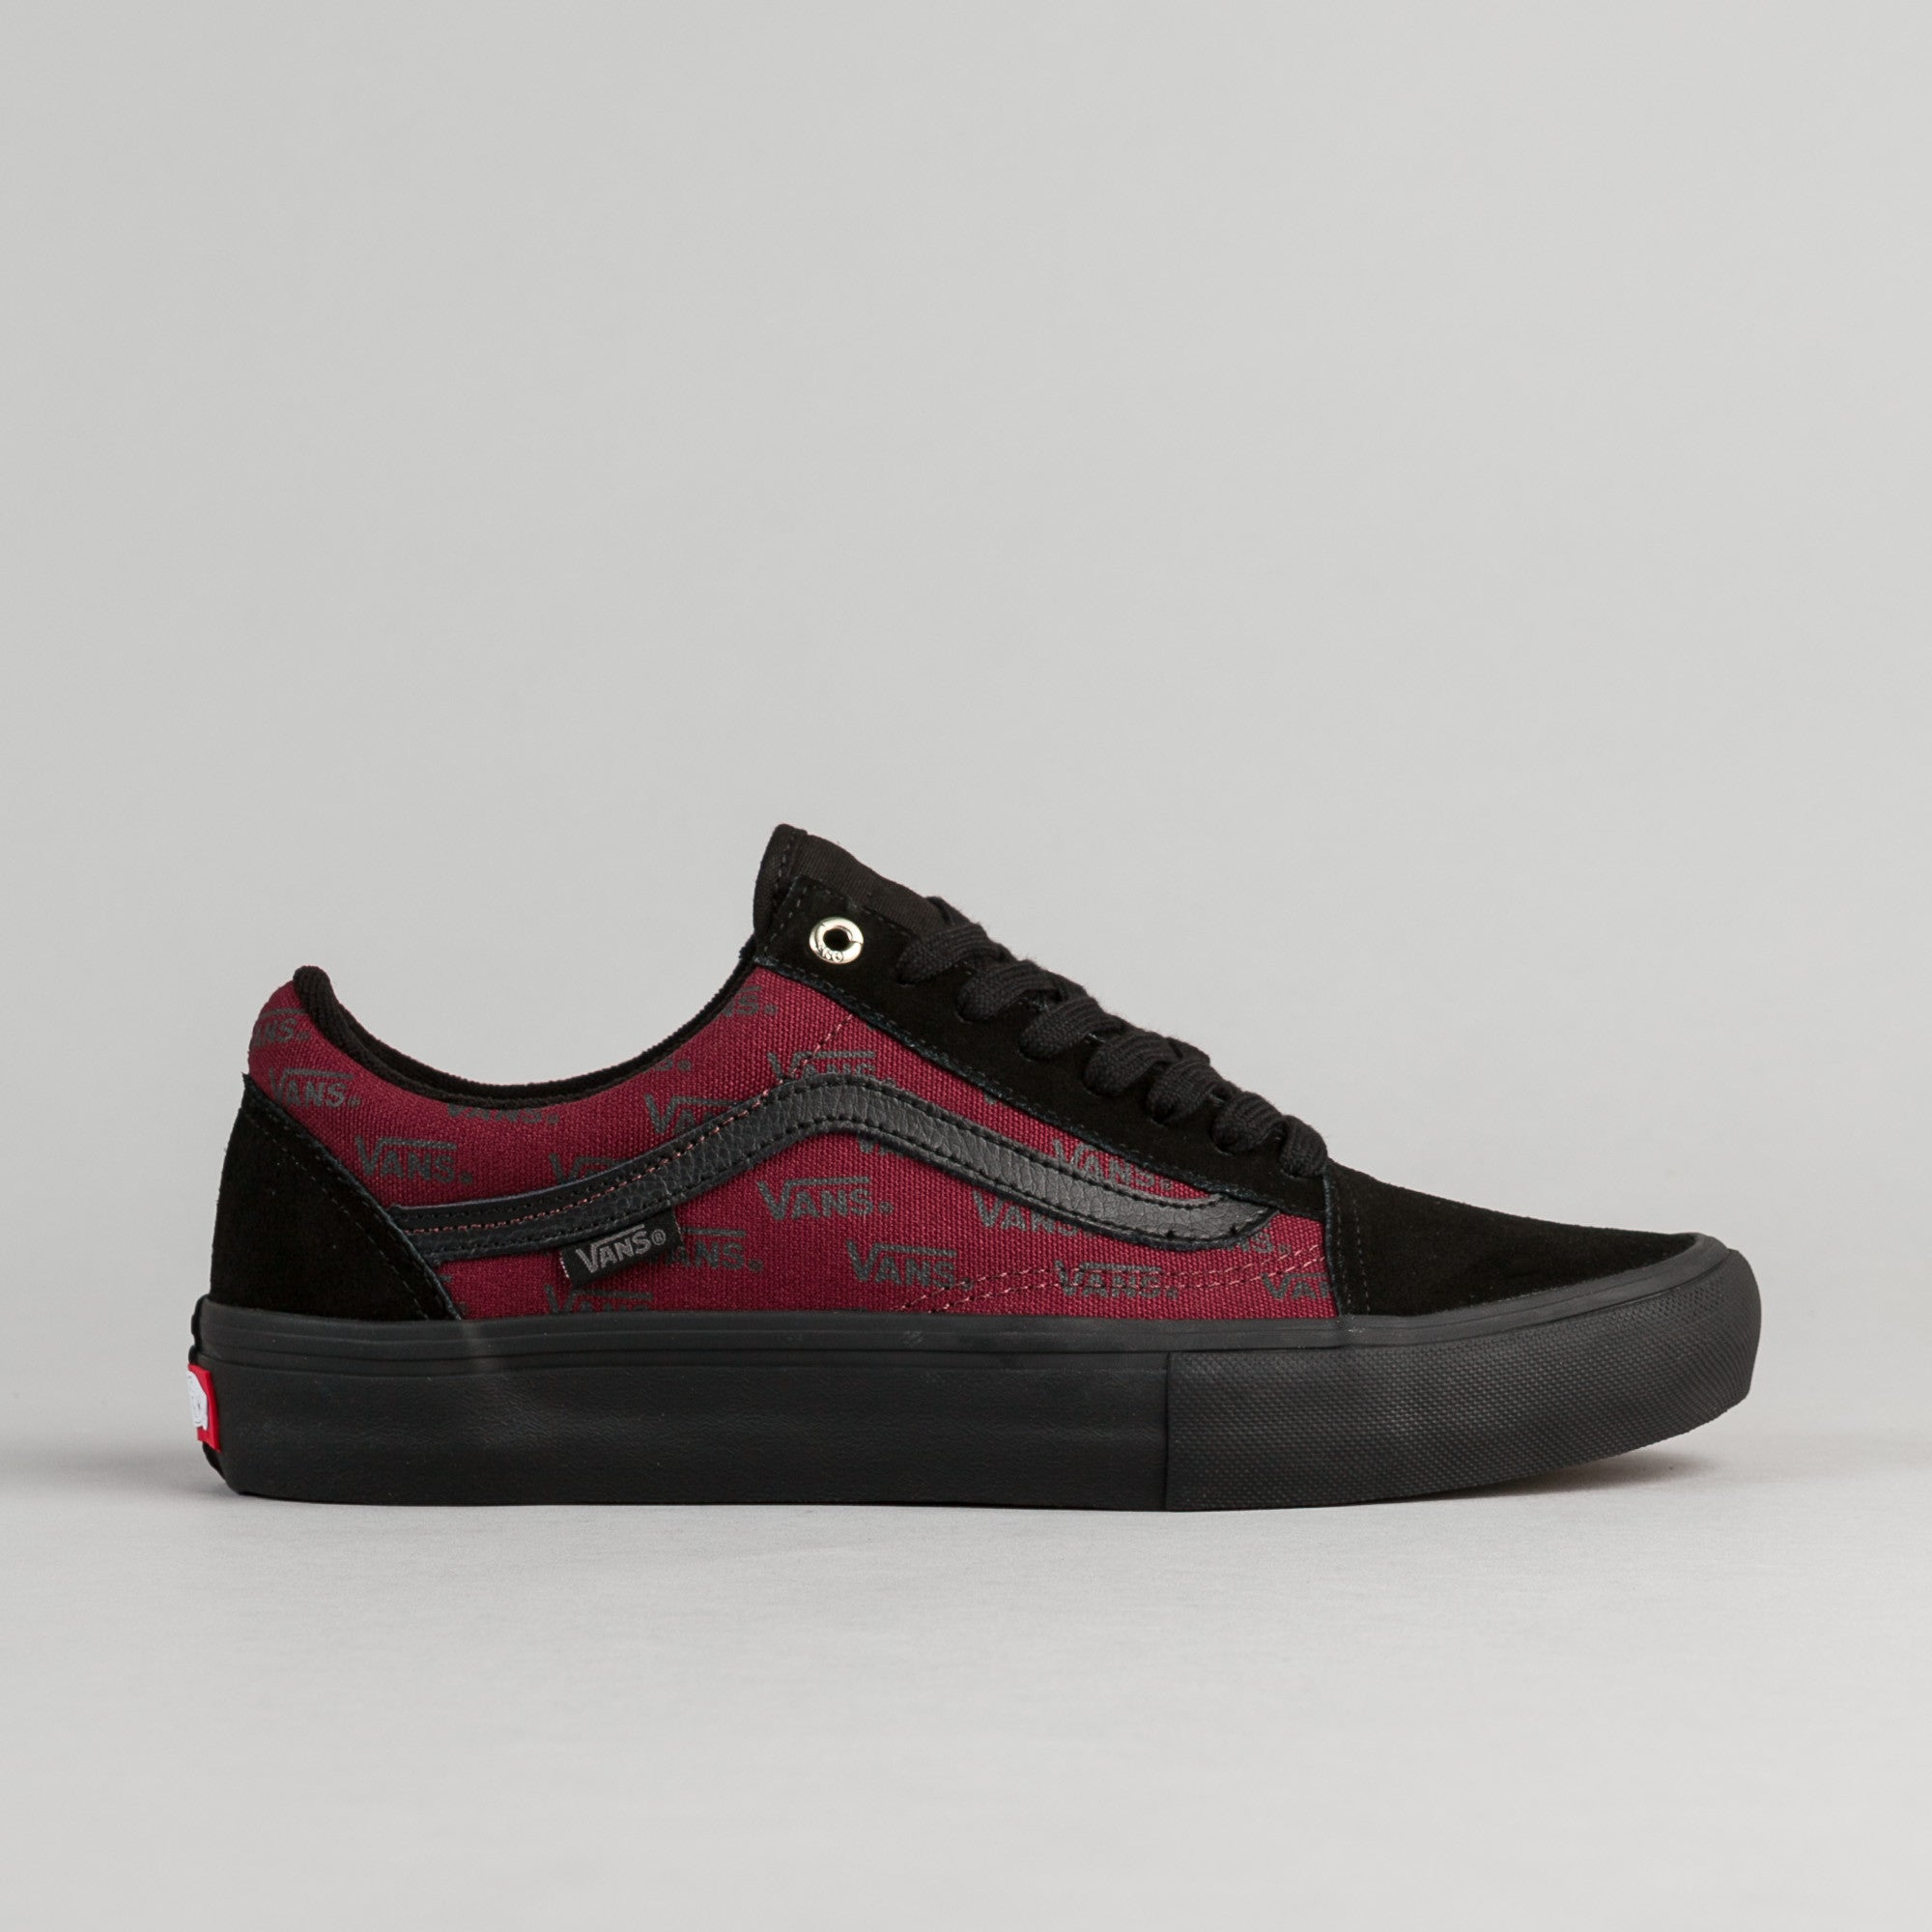 Vans Old Skool Pro Shoes - Port Royale / Black